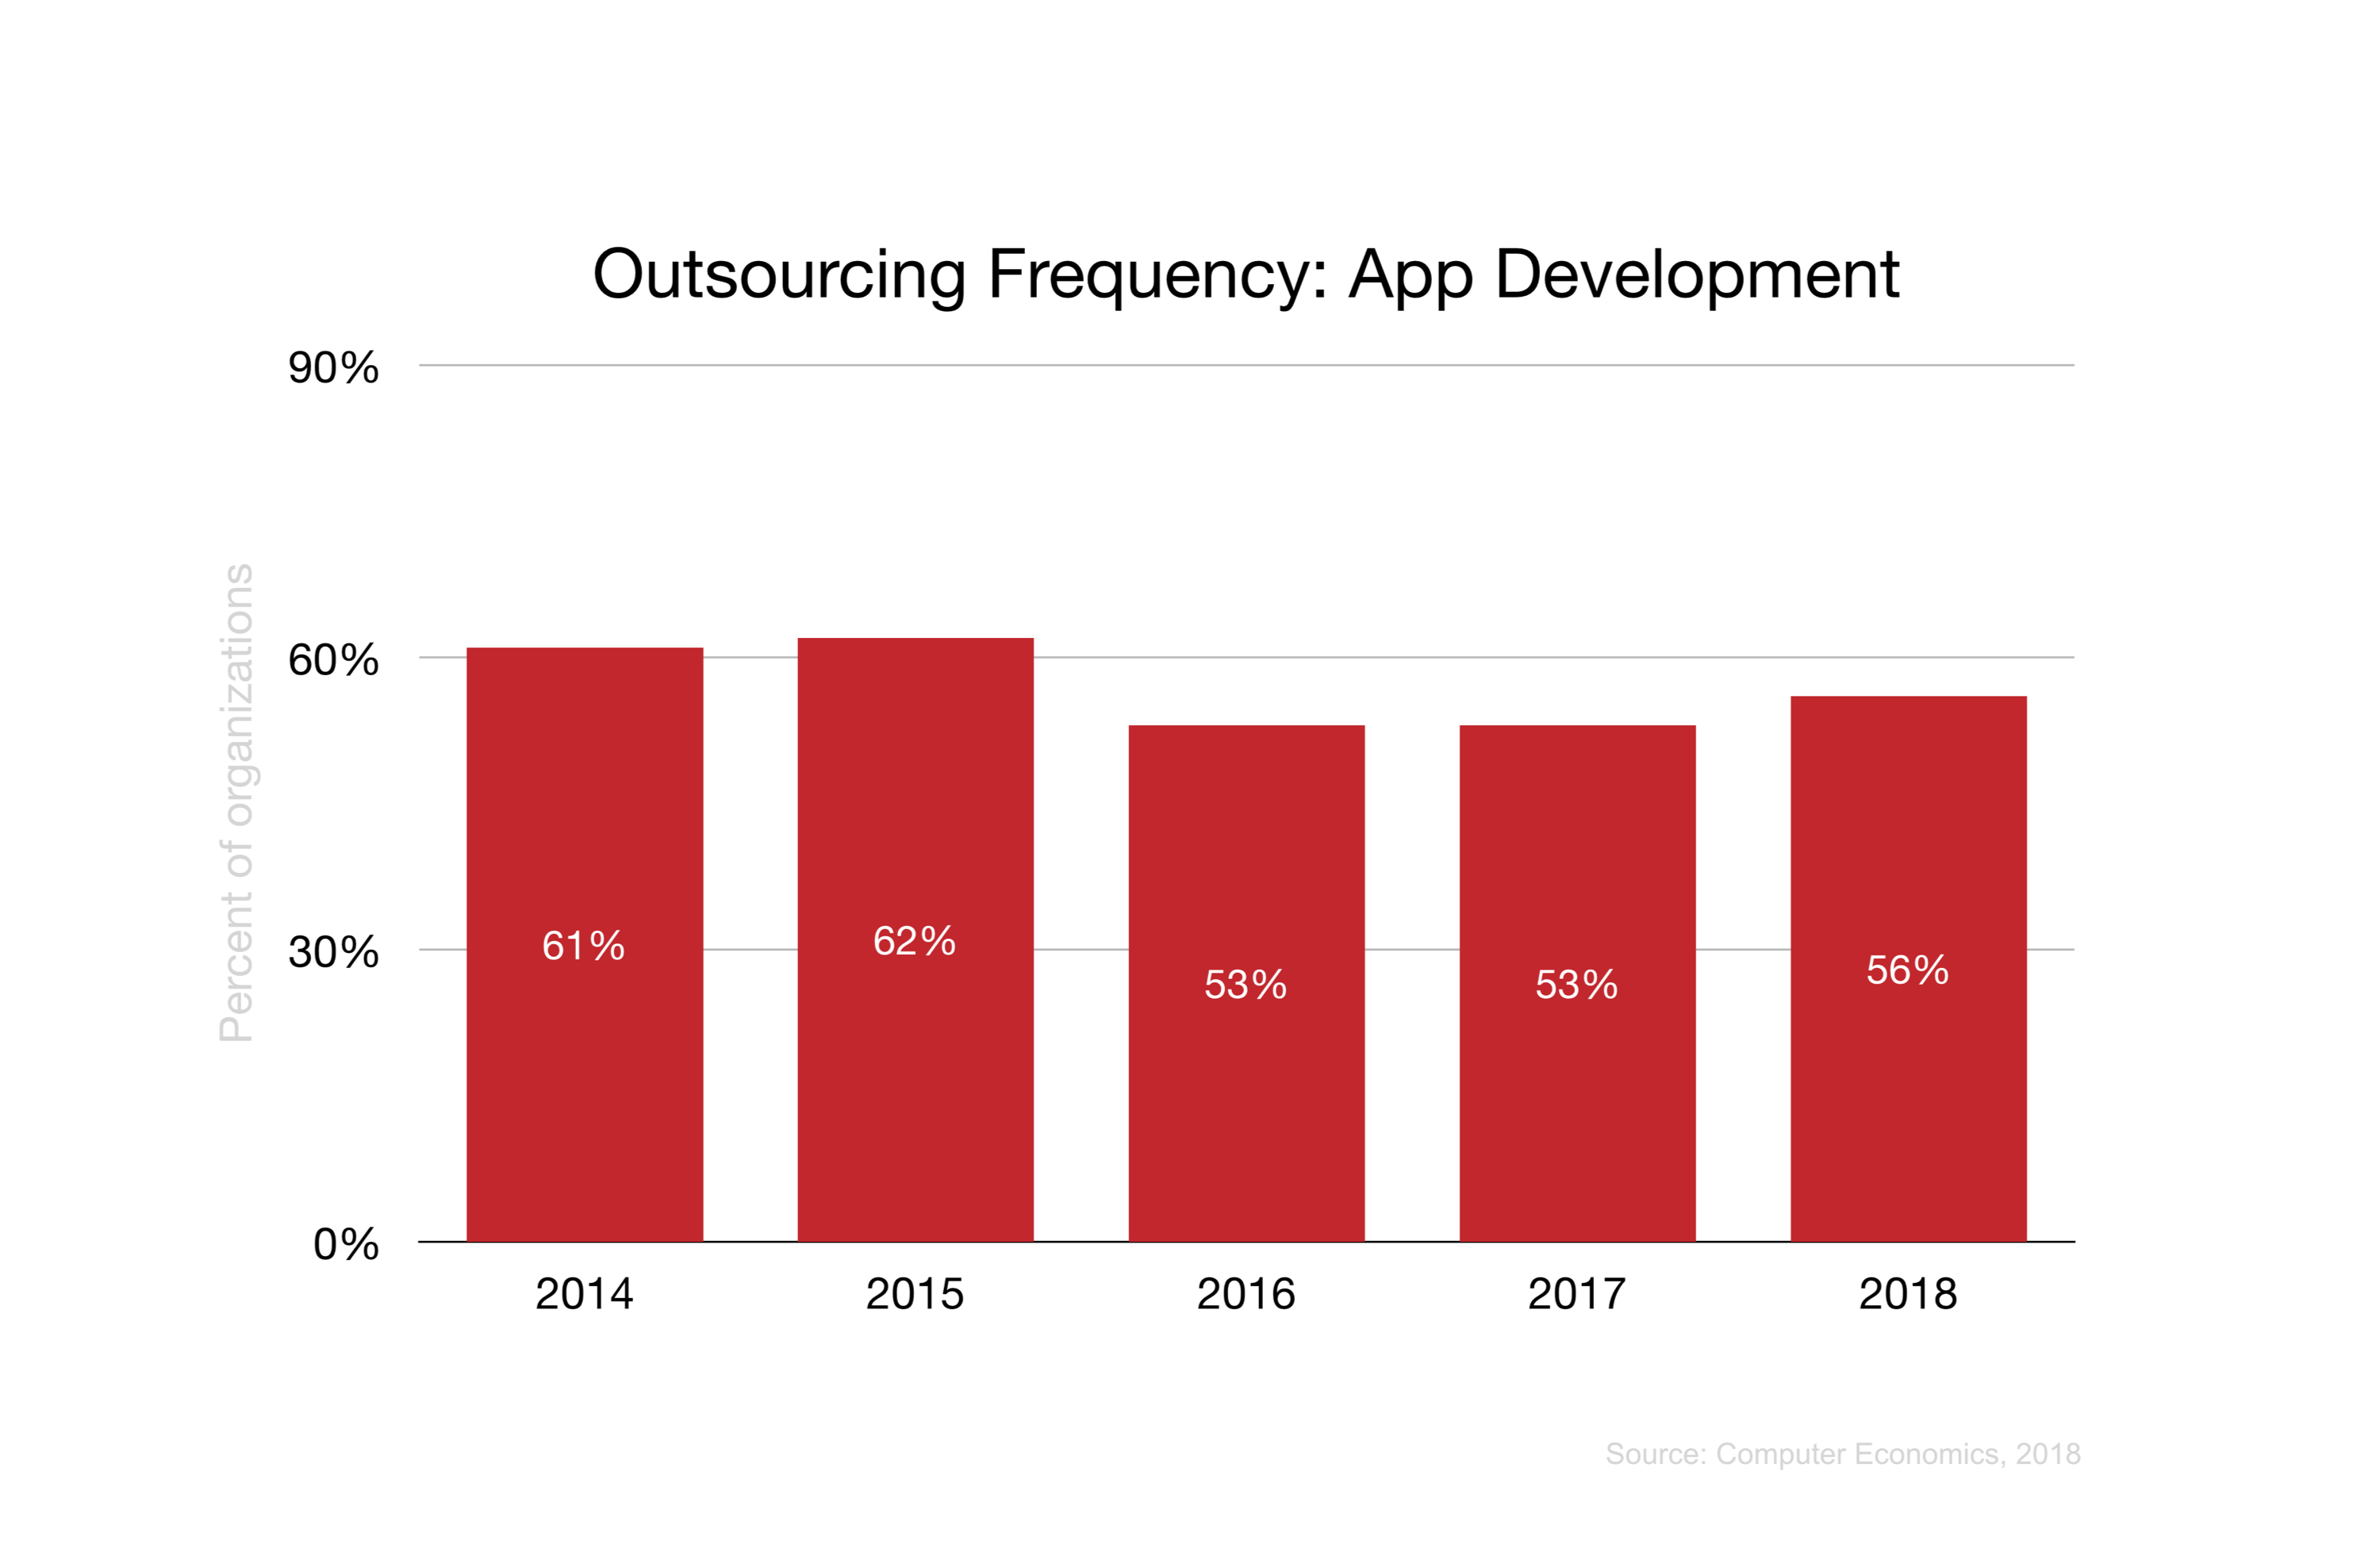 Outsourcing Frequency: App Development